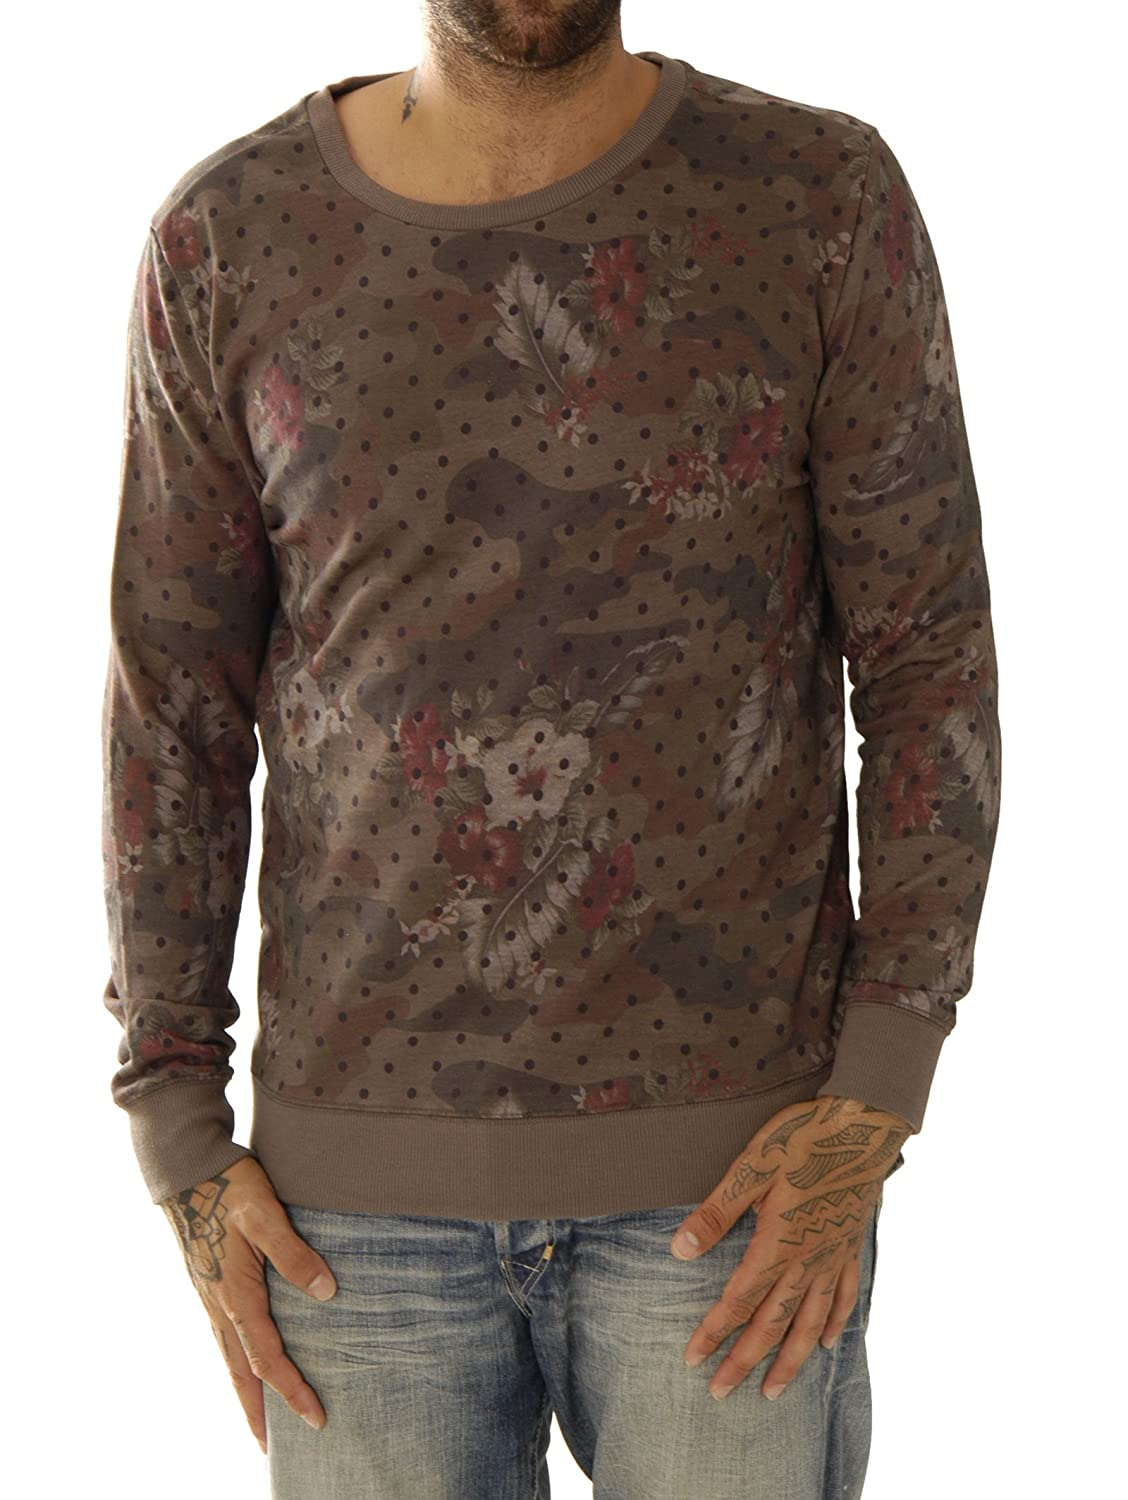 Kultivate Herren Sweat-Shirt Sw Camo Flower Usp1501041008-92